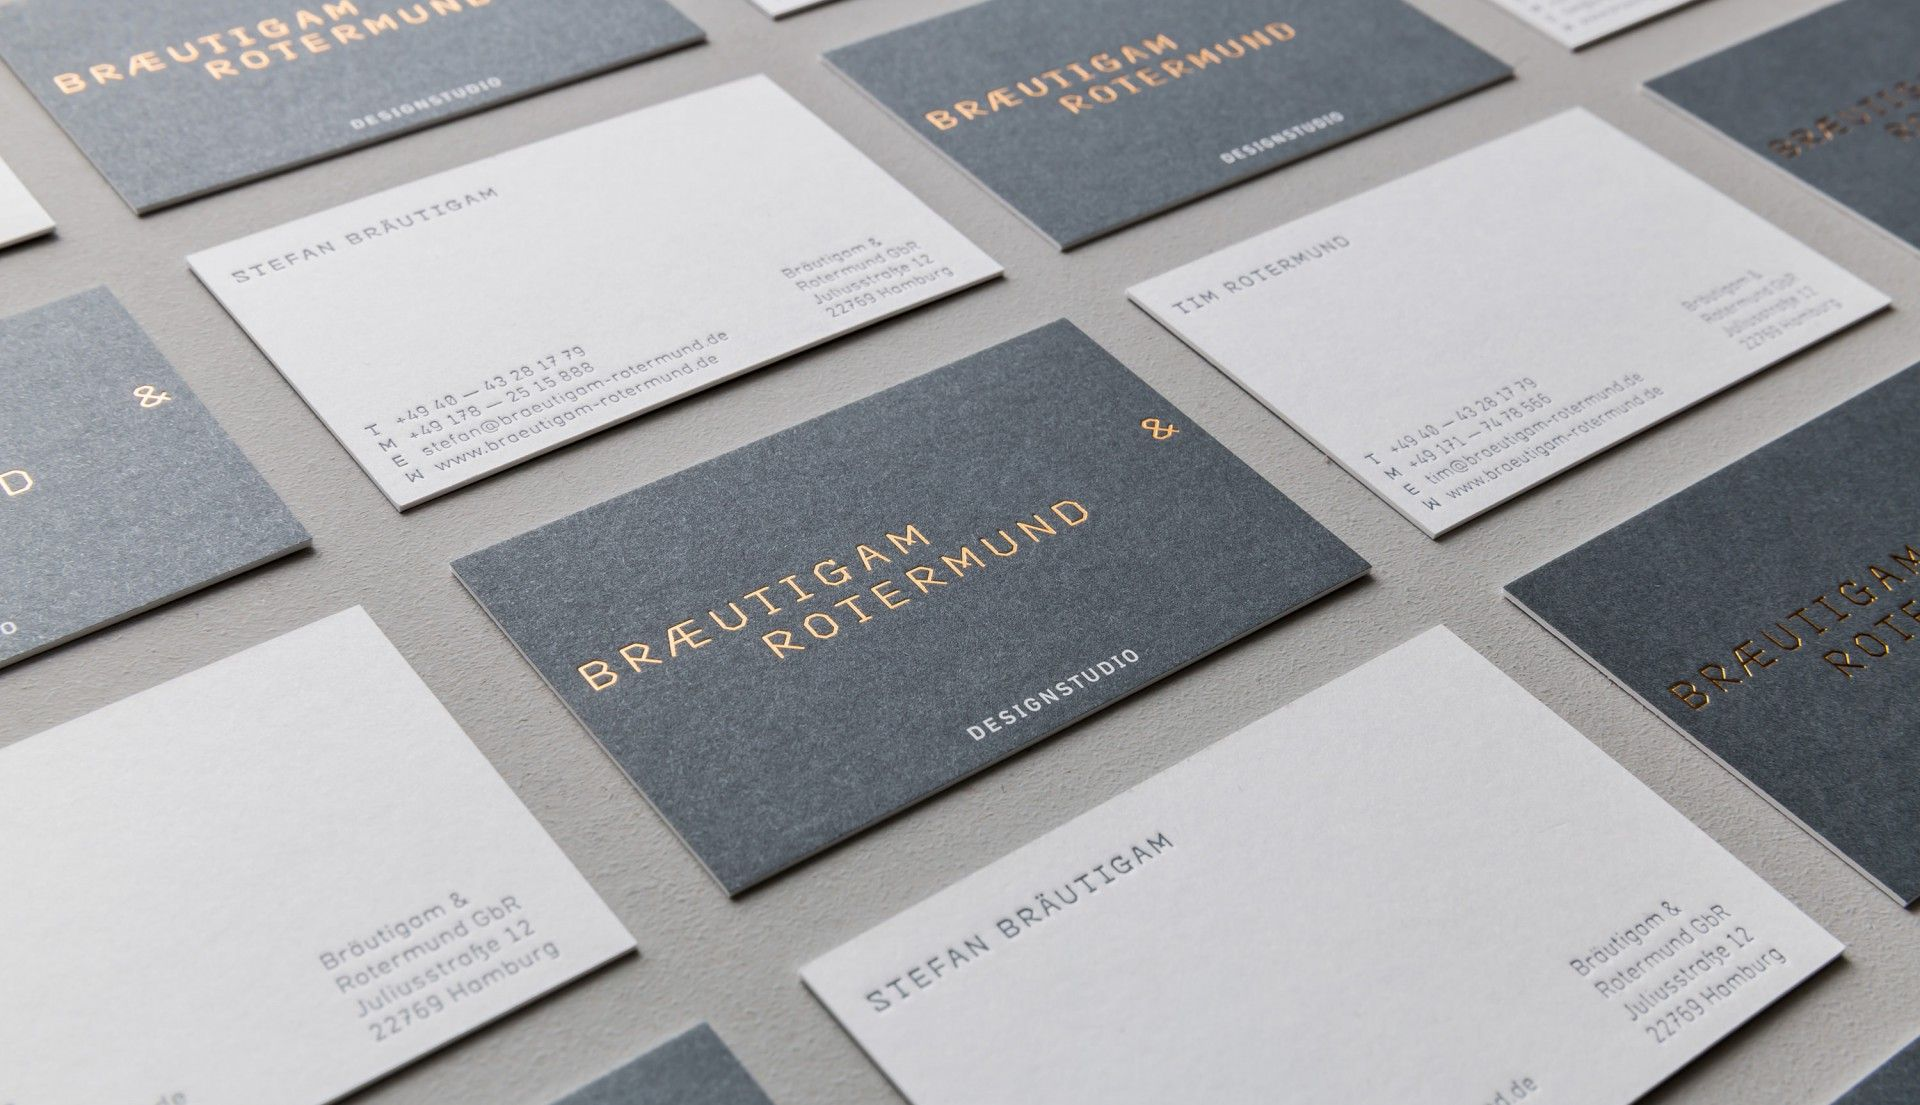 Brutigam rotermund brutigam rotermund branding pinterest brutigam rotermund brutigam rotermund reheart Image collections